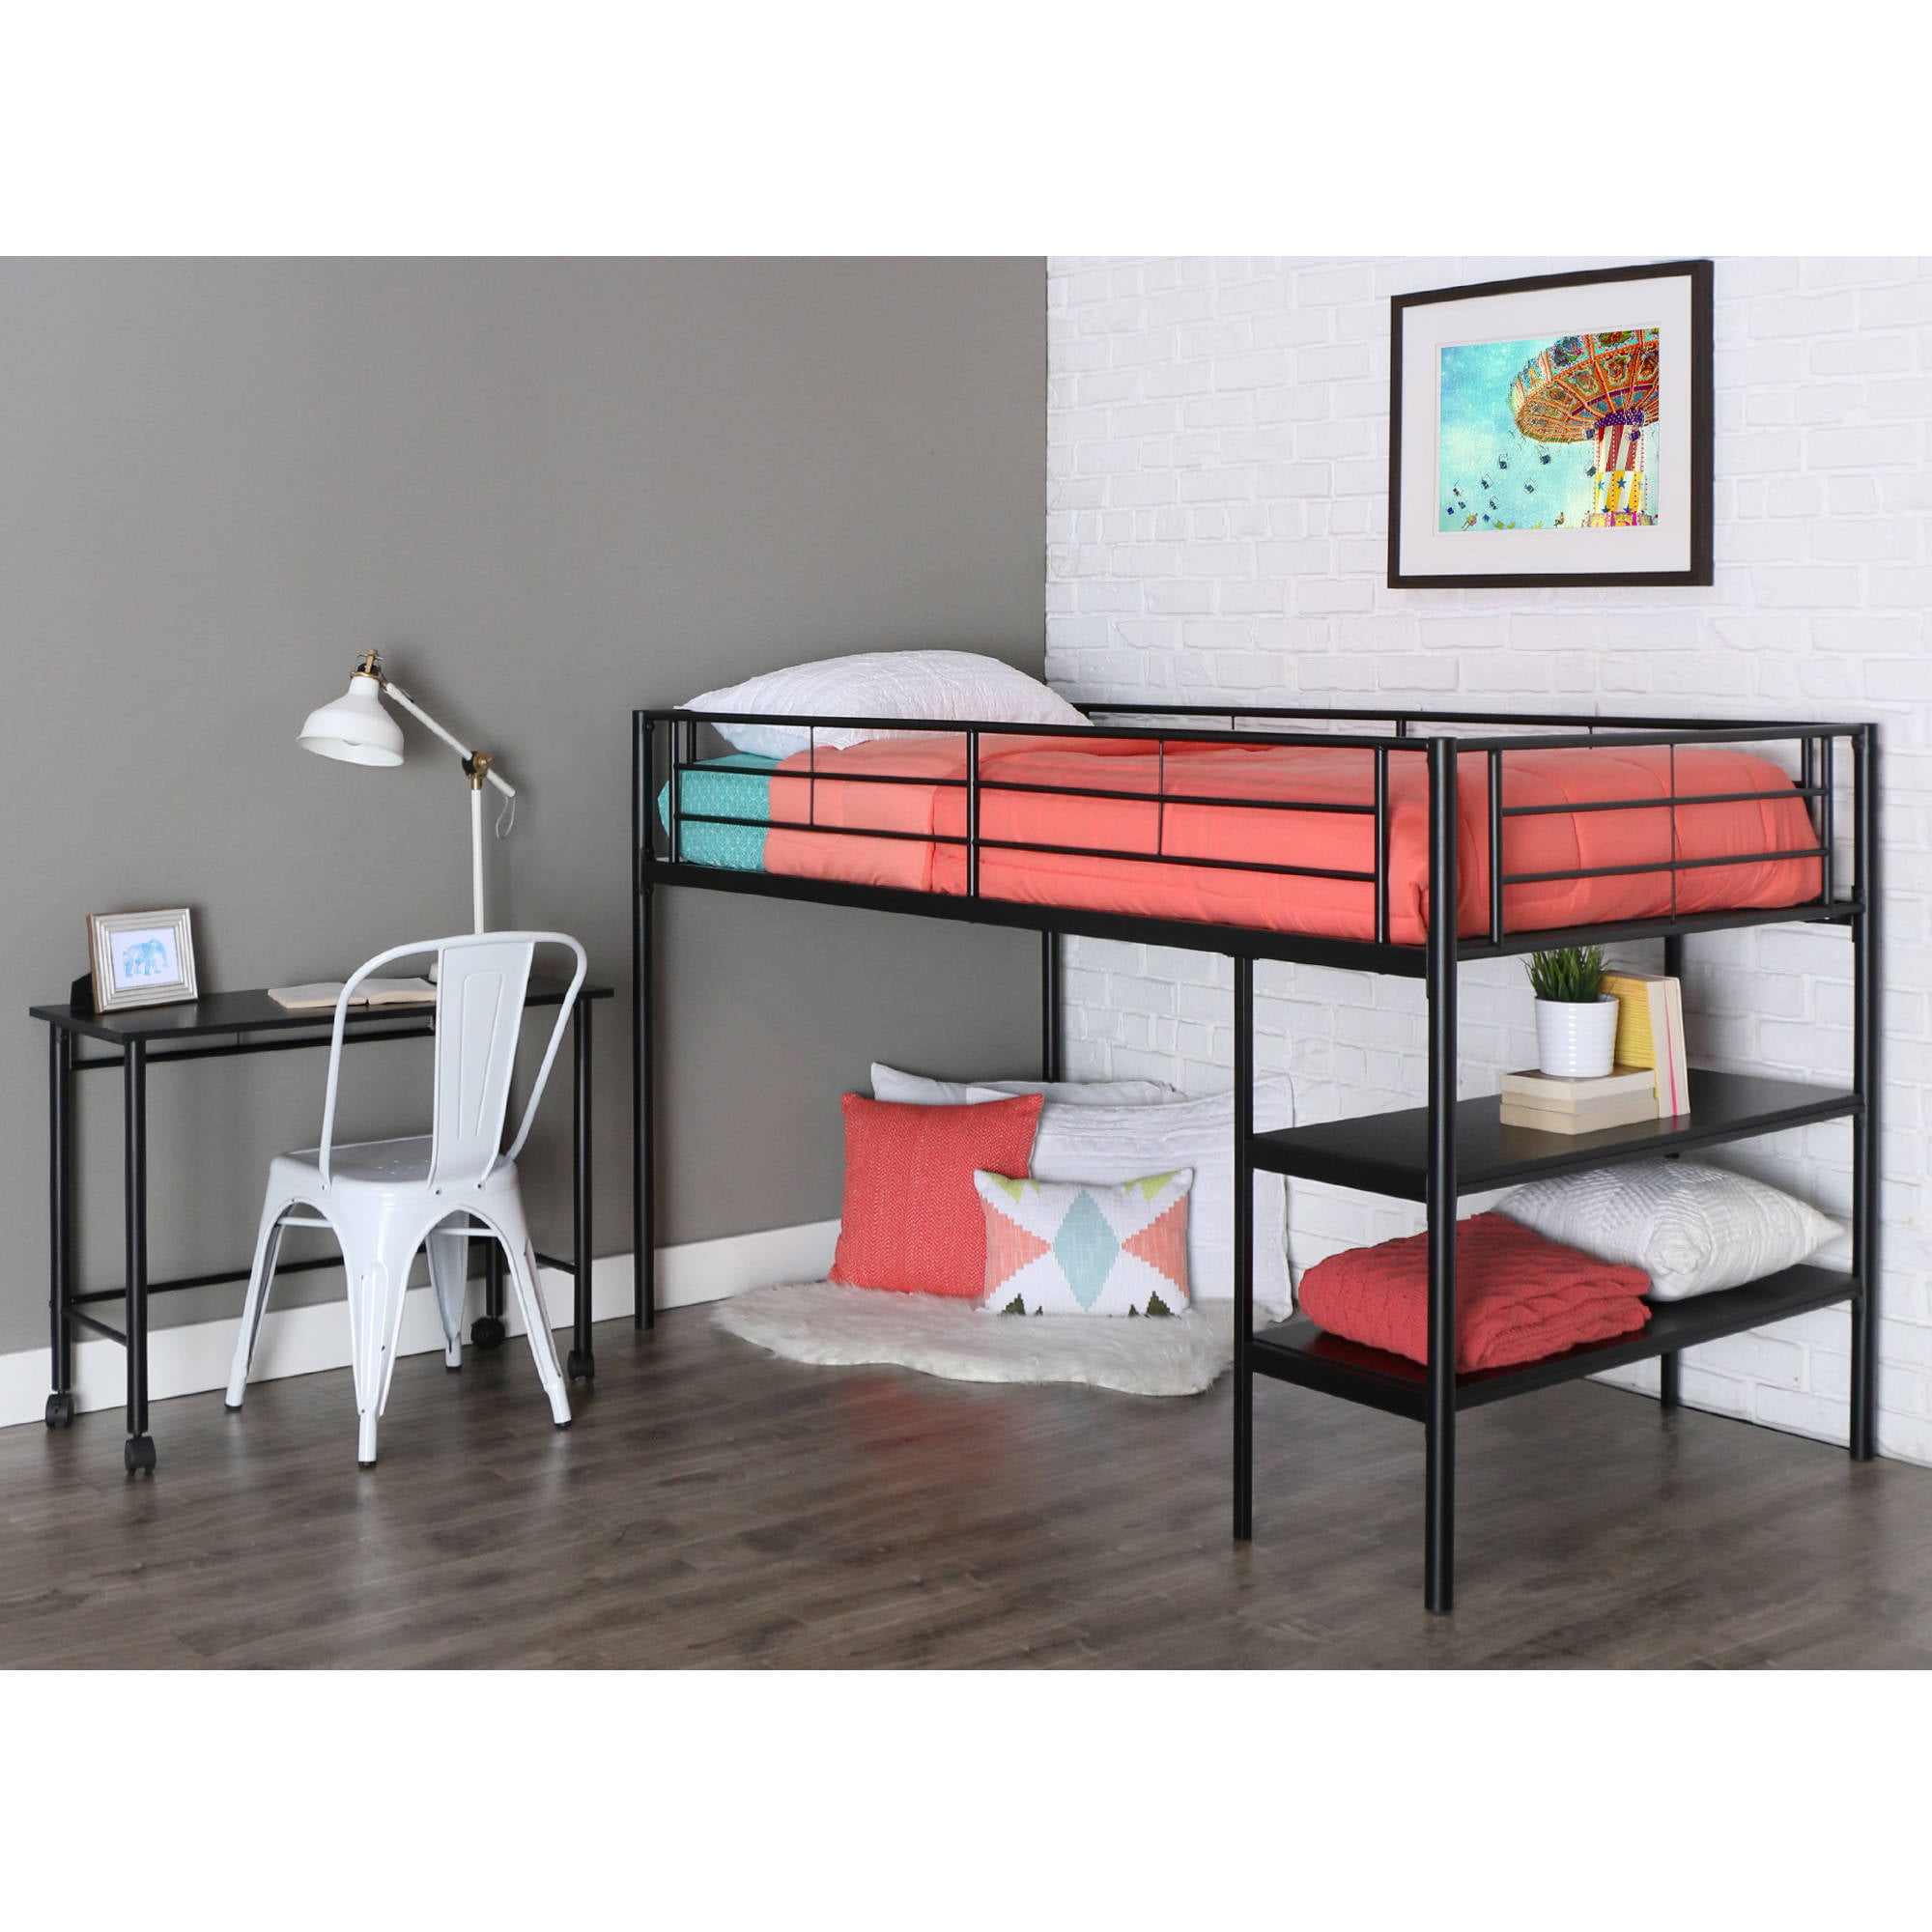 Walker Edison Twin Metal Loft Bed with Desk and Shelving, Black -  Walmart.com